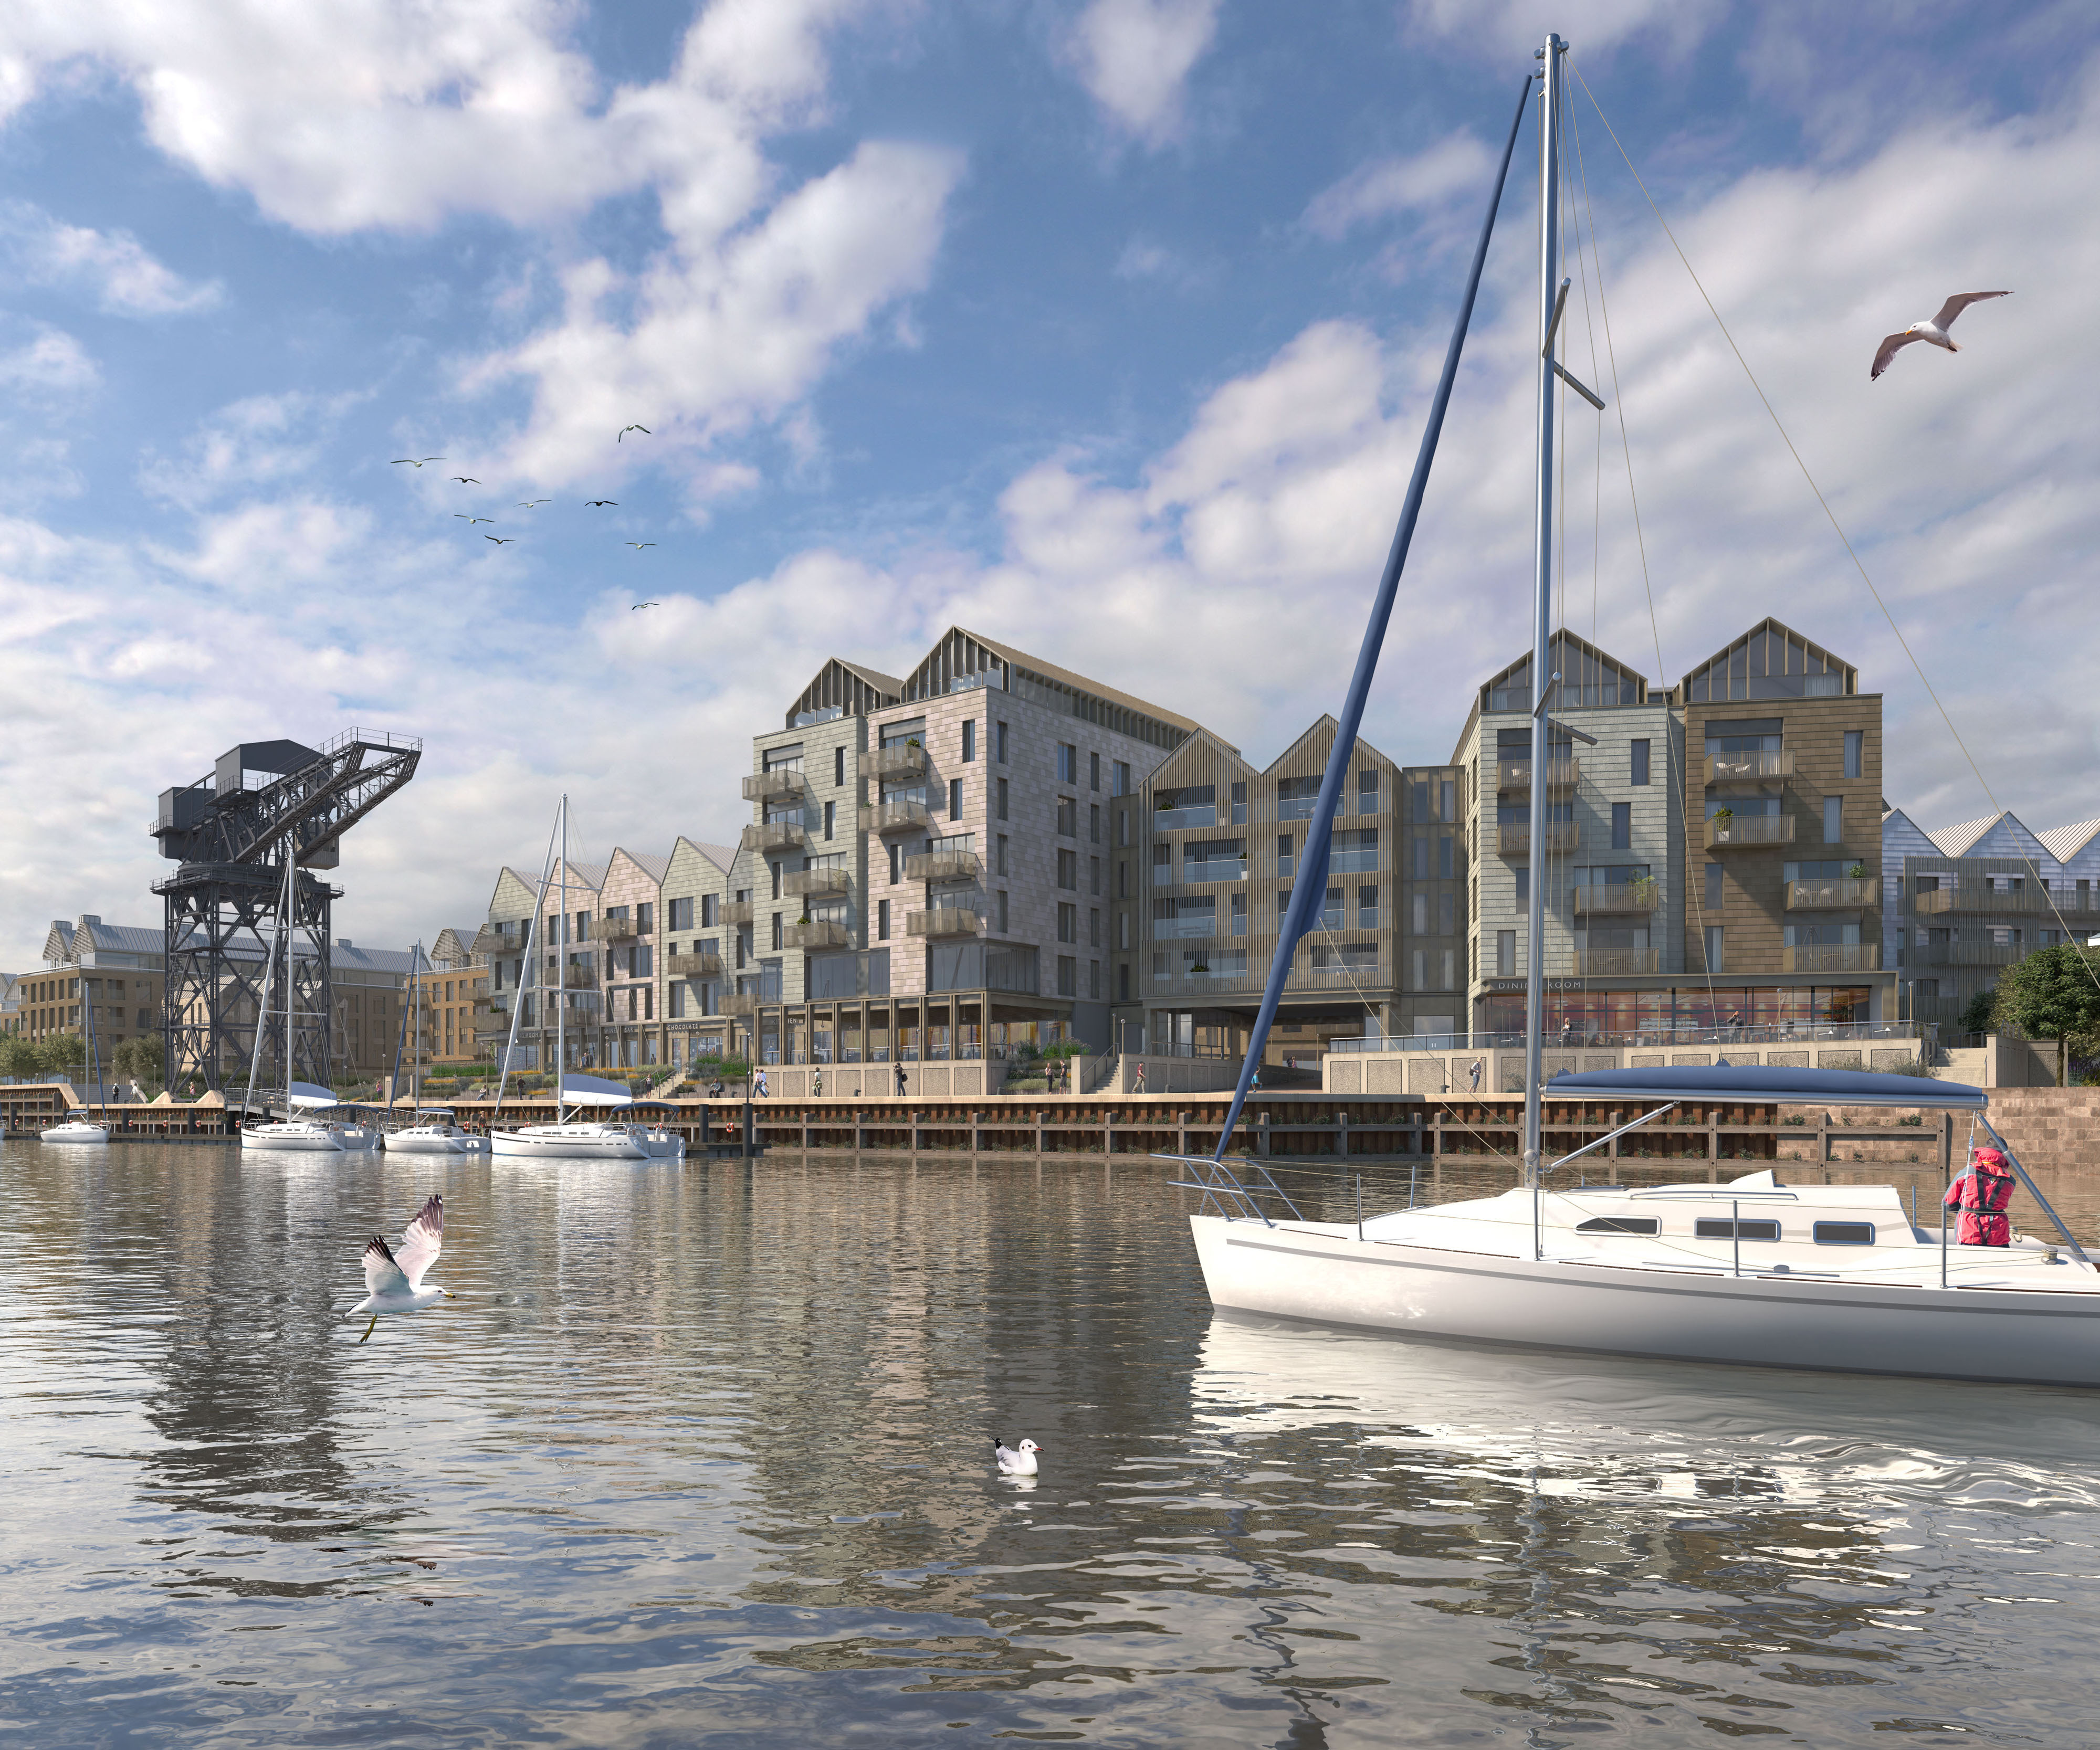 Artist's impression of the waterfront looking towards Hammerhead Crane